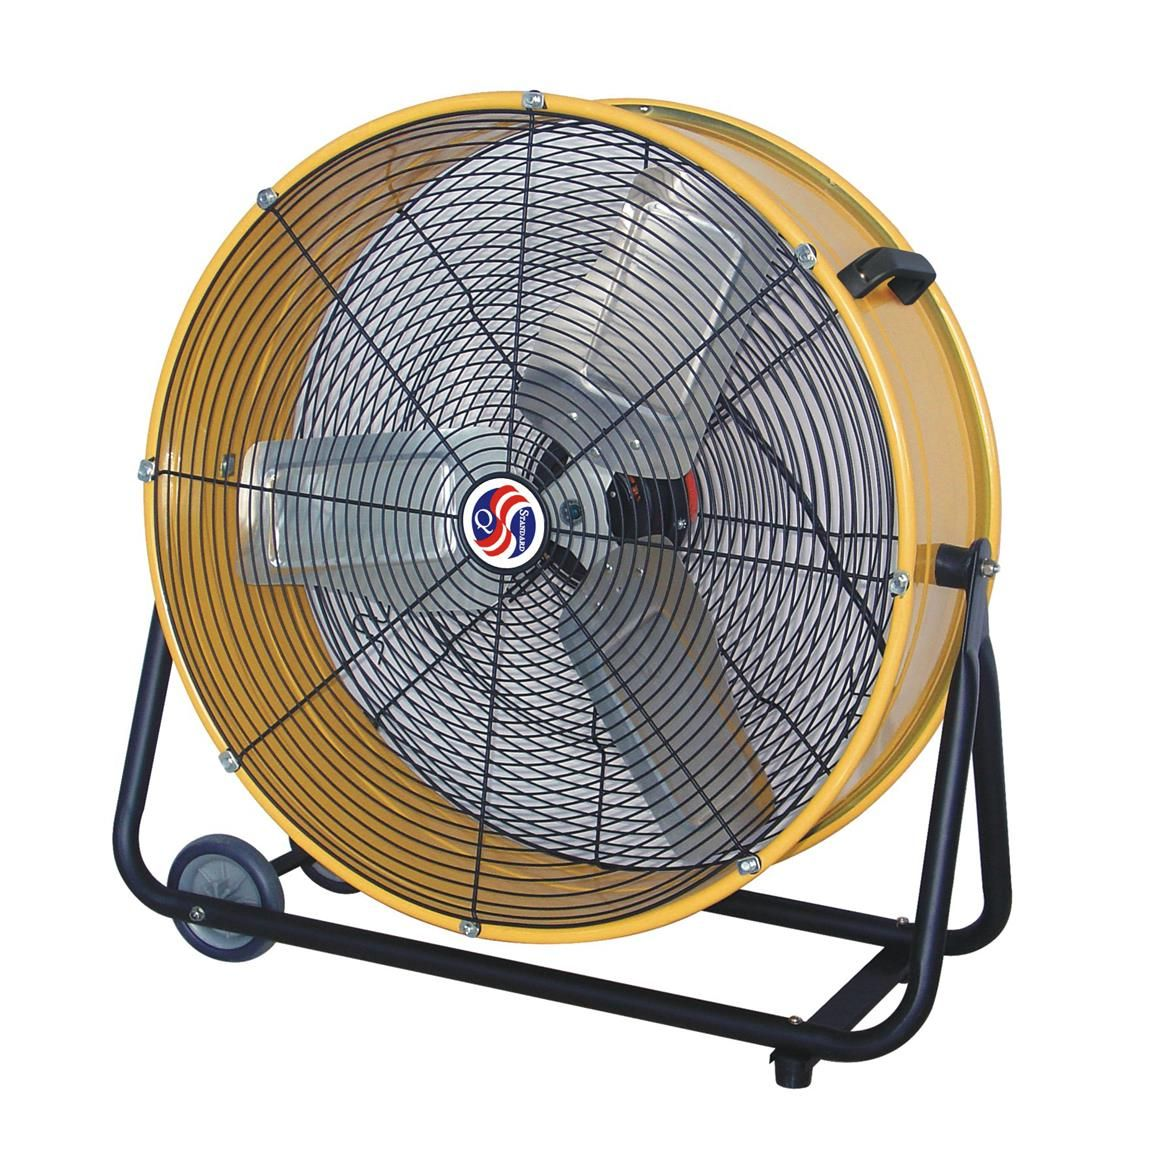 "Q Standard Classic Cooler Drum Fan, 23"" Fan, Floor fans"